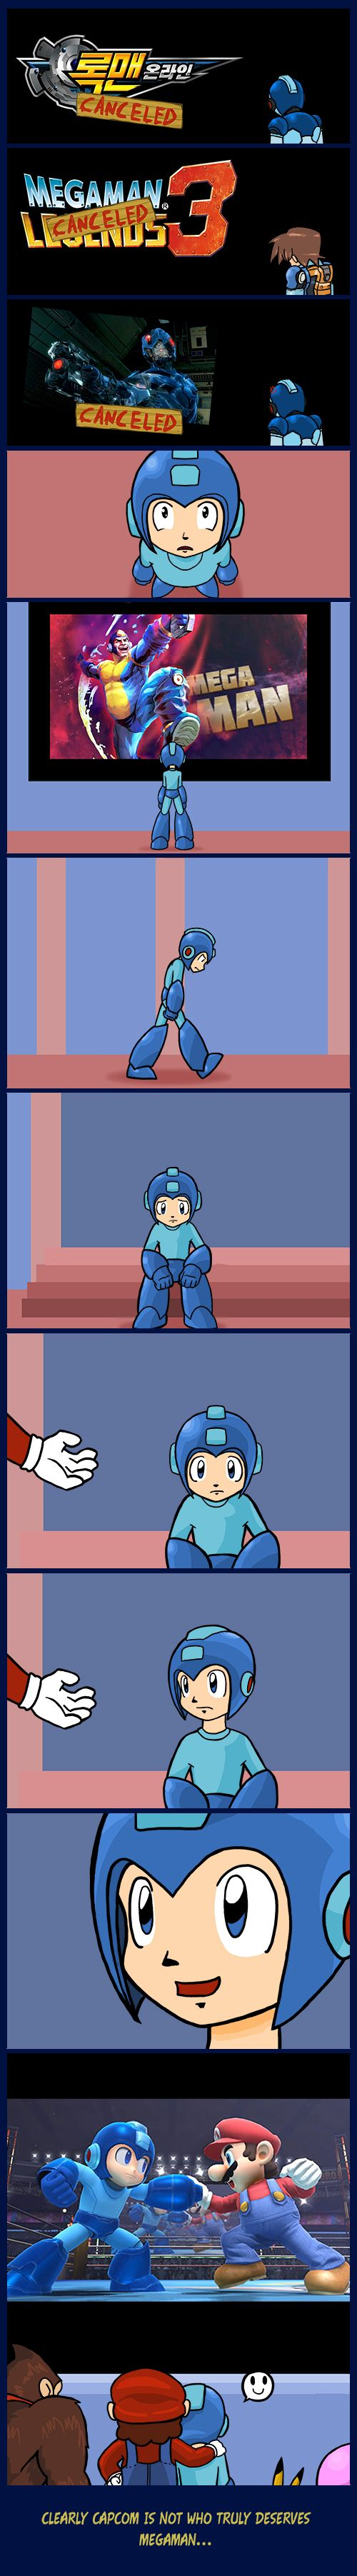 Capcom, why are you treating my little blue pal this way?